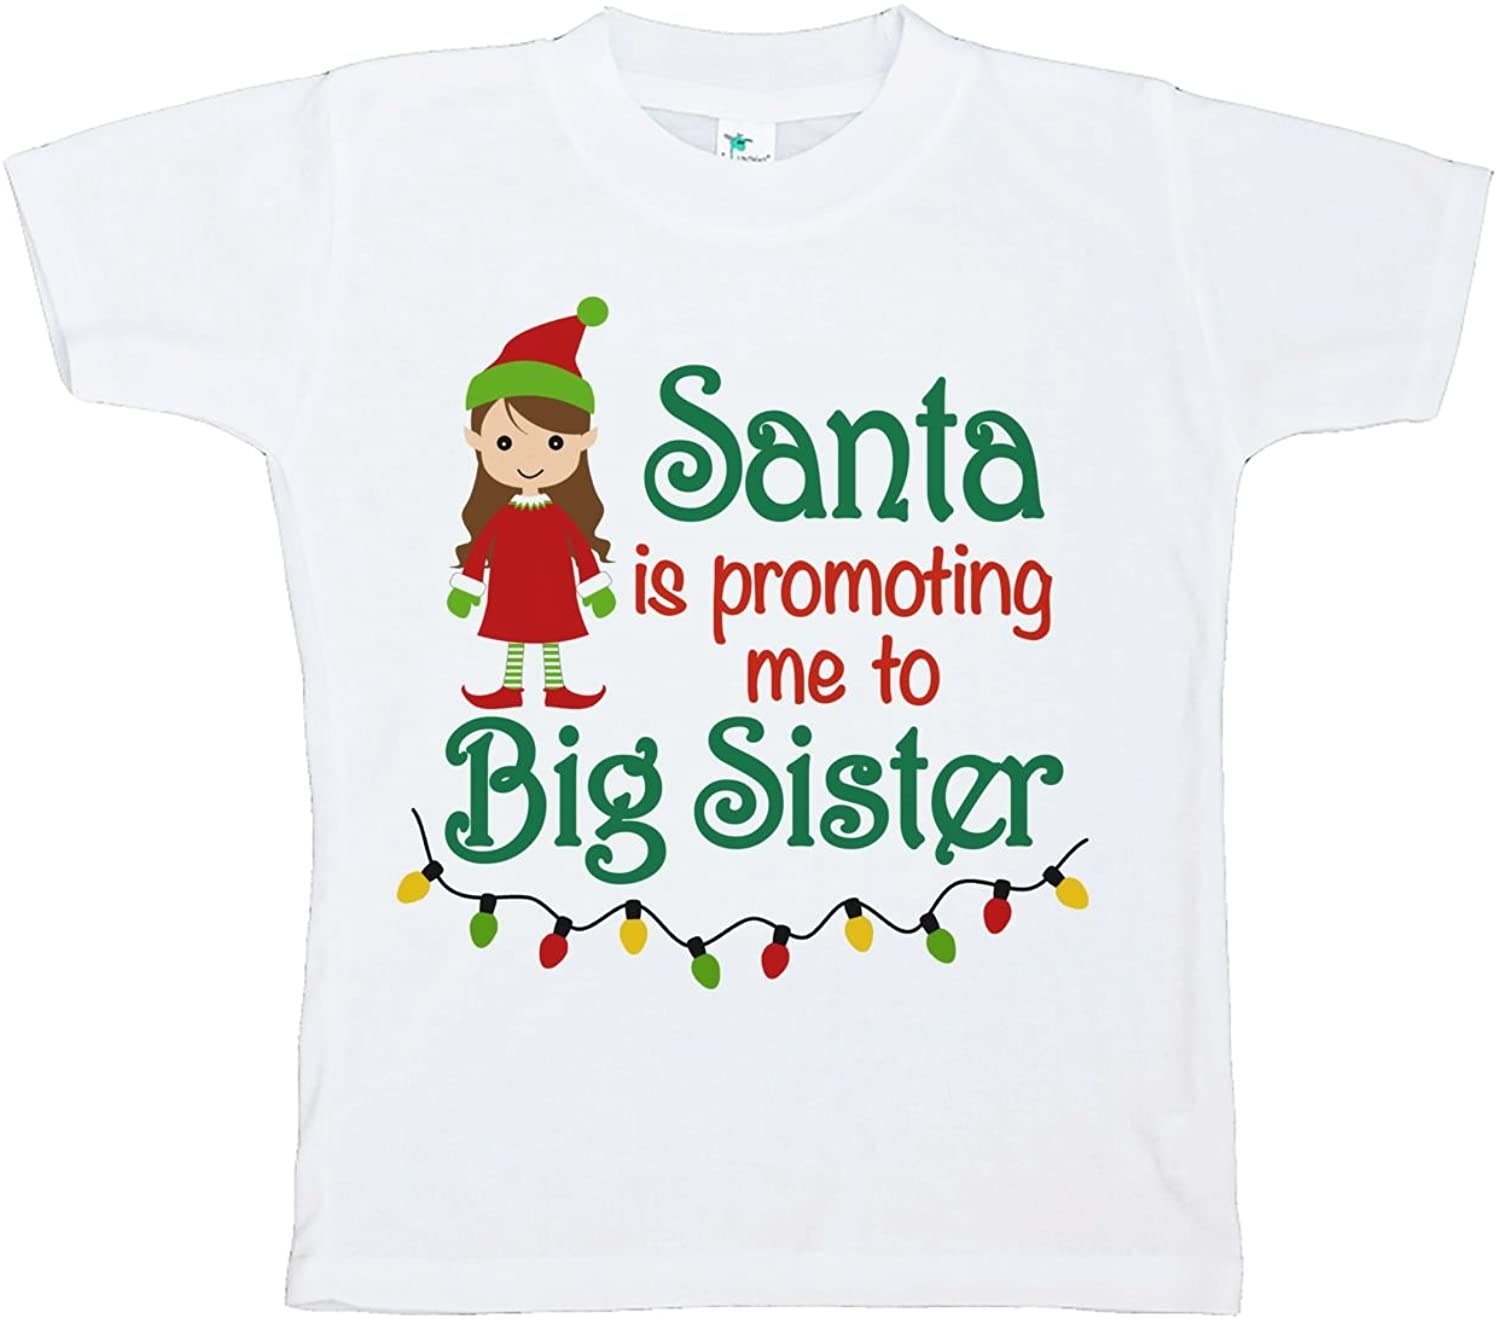 Custom Party Shop Youth Big Sister Christmas T-Shirt